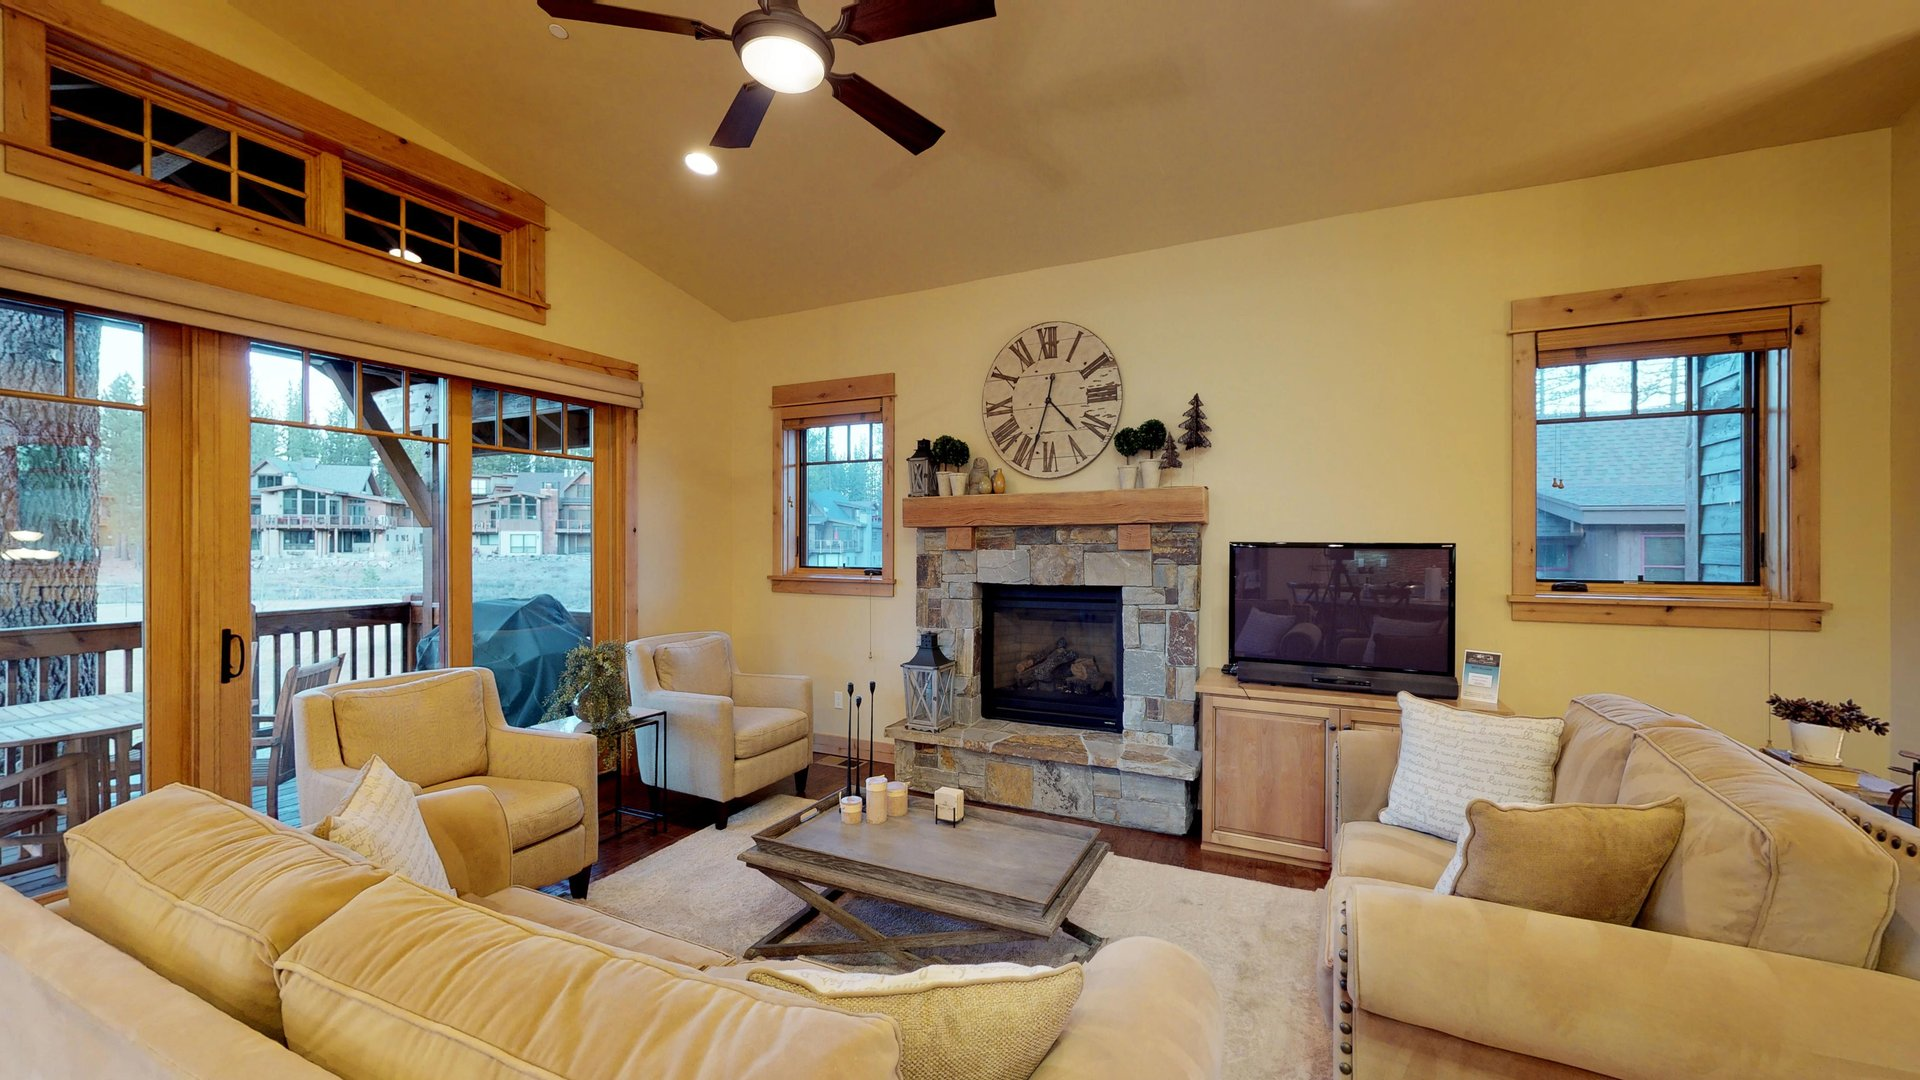 Two Sofas, Two Chairs, and Coffee Table in Vacation Rental in Truckee CA.